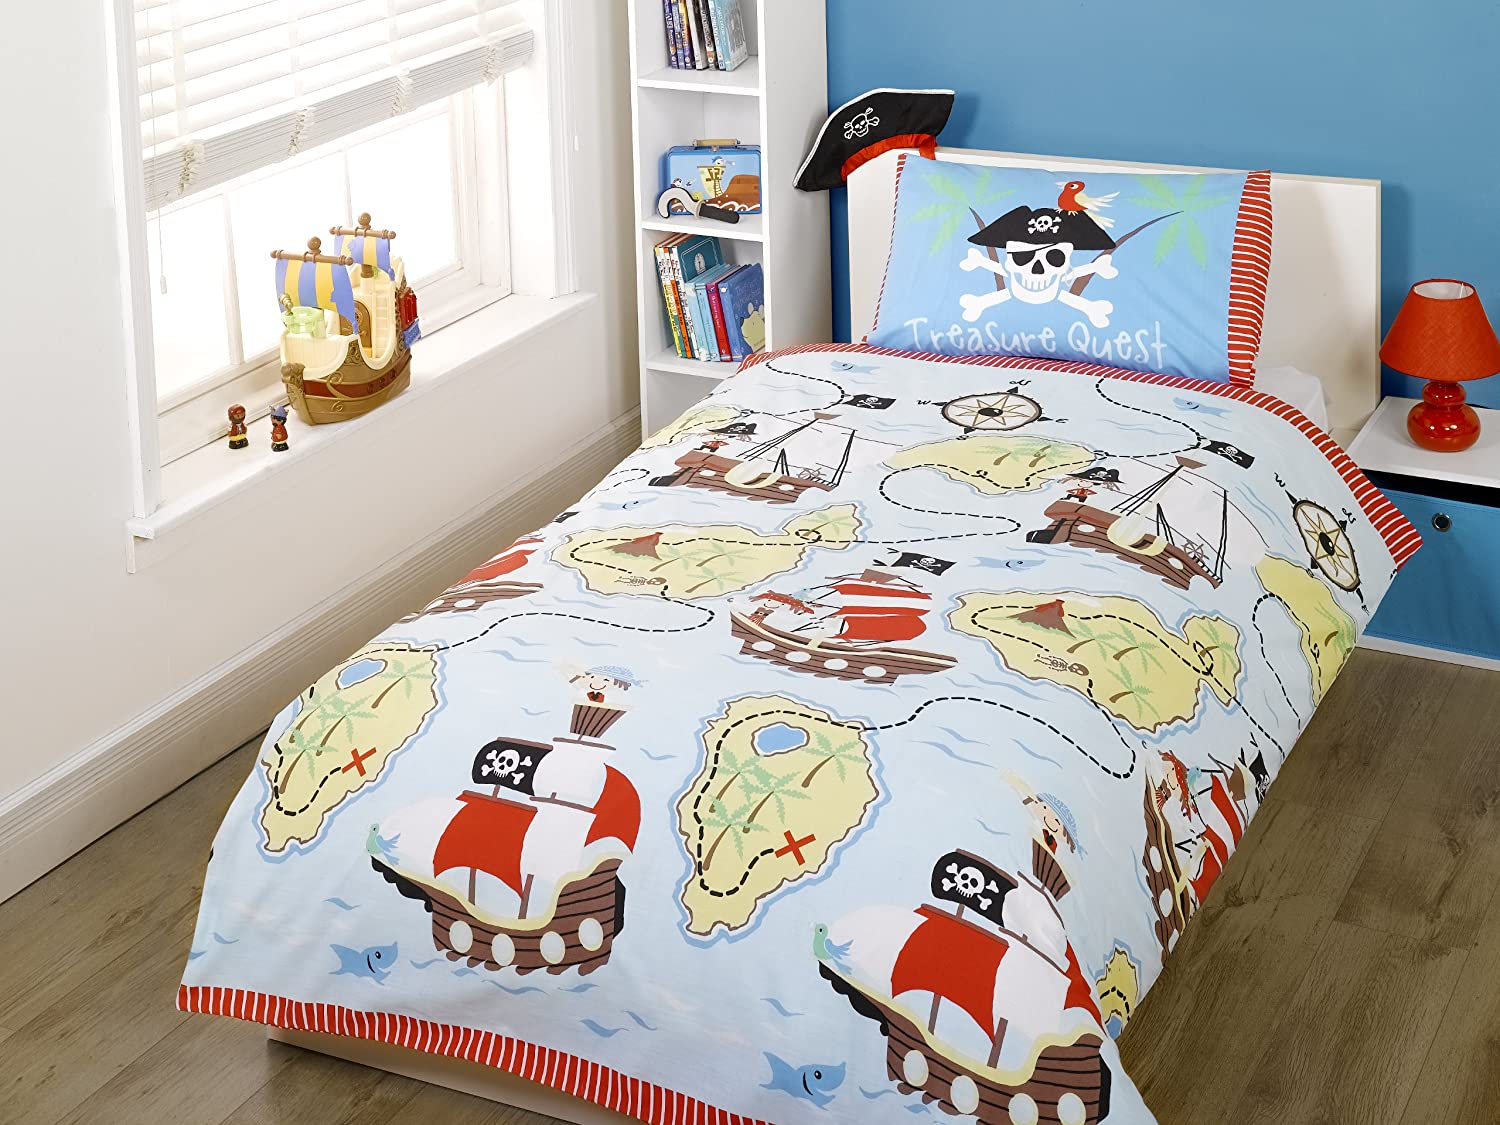 Lego Pirates Of The Caribbean Bedding Sheet Set